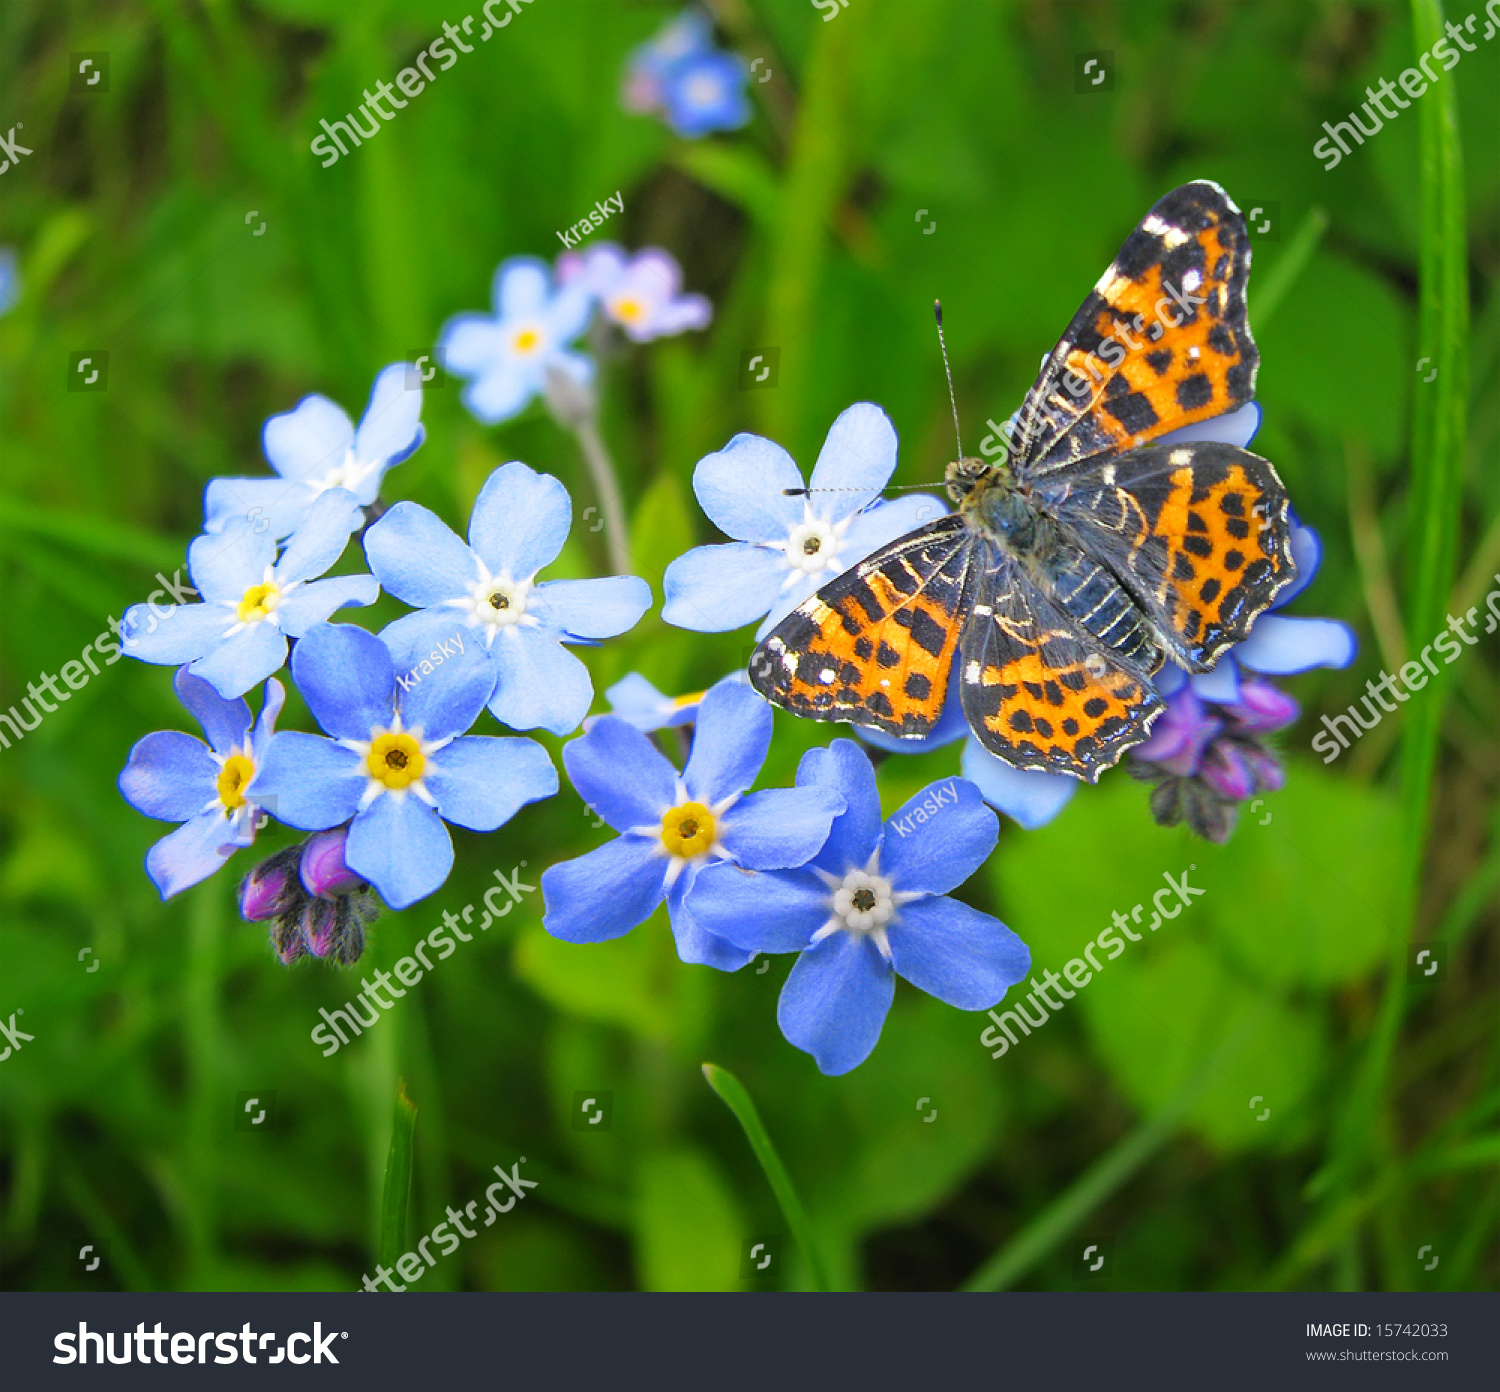 forget me not flowers butterfly stock photo 15742033 shutterstock